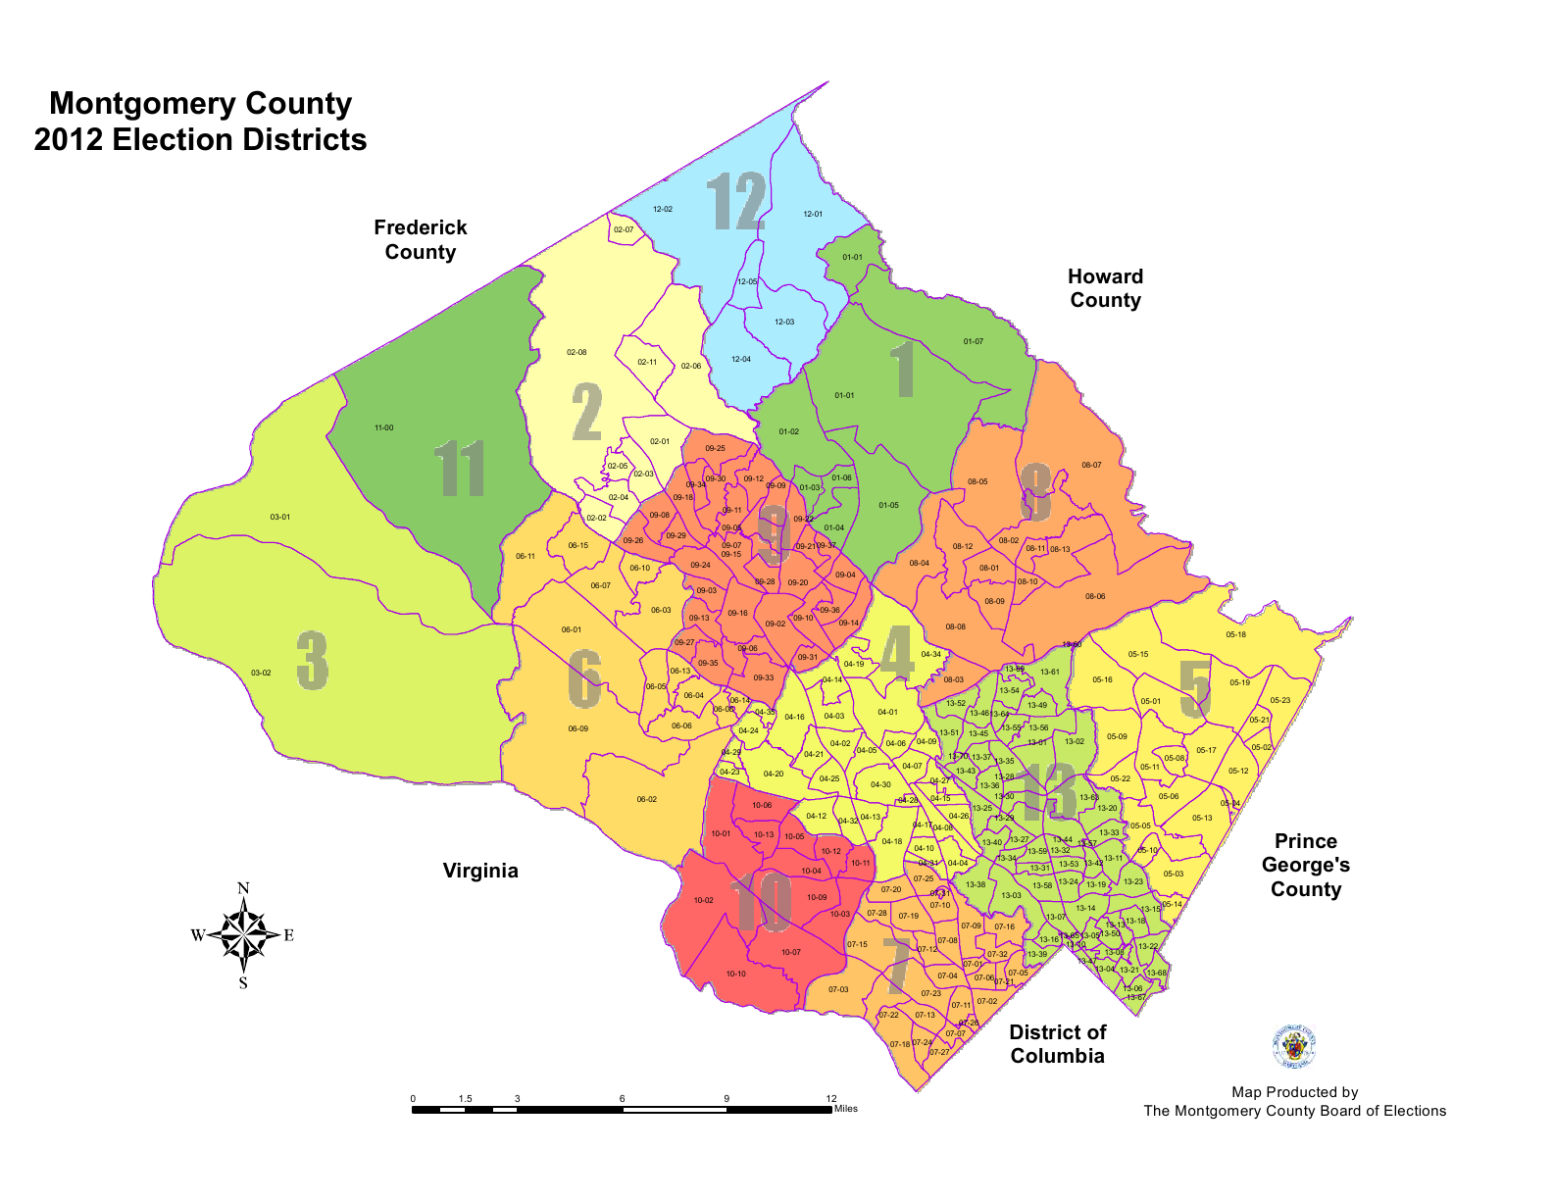 Contact Information For County Election Officials